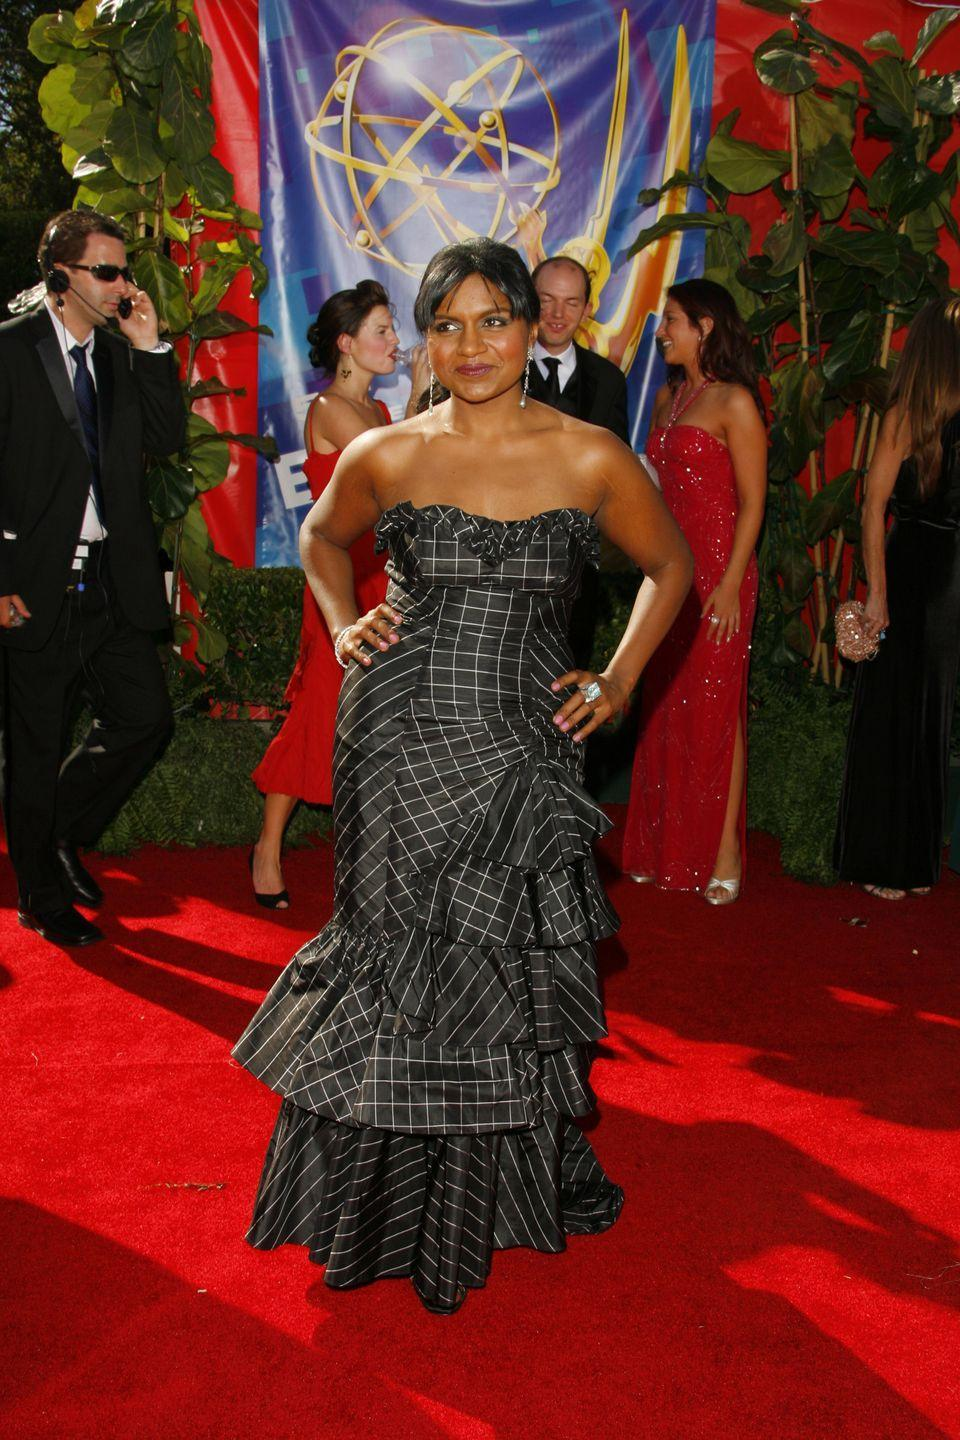 <p>Kaling wore this black patterned dress to the Emmy Awards in 2006.</p>